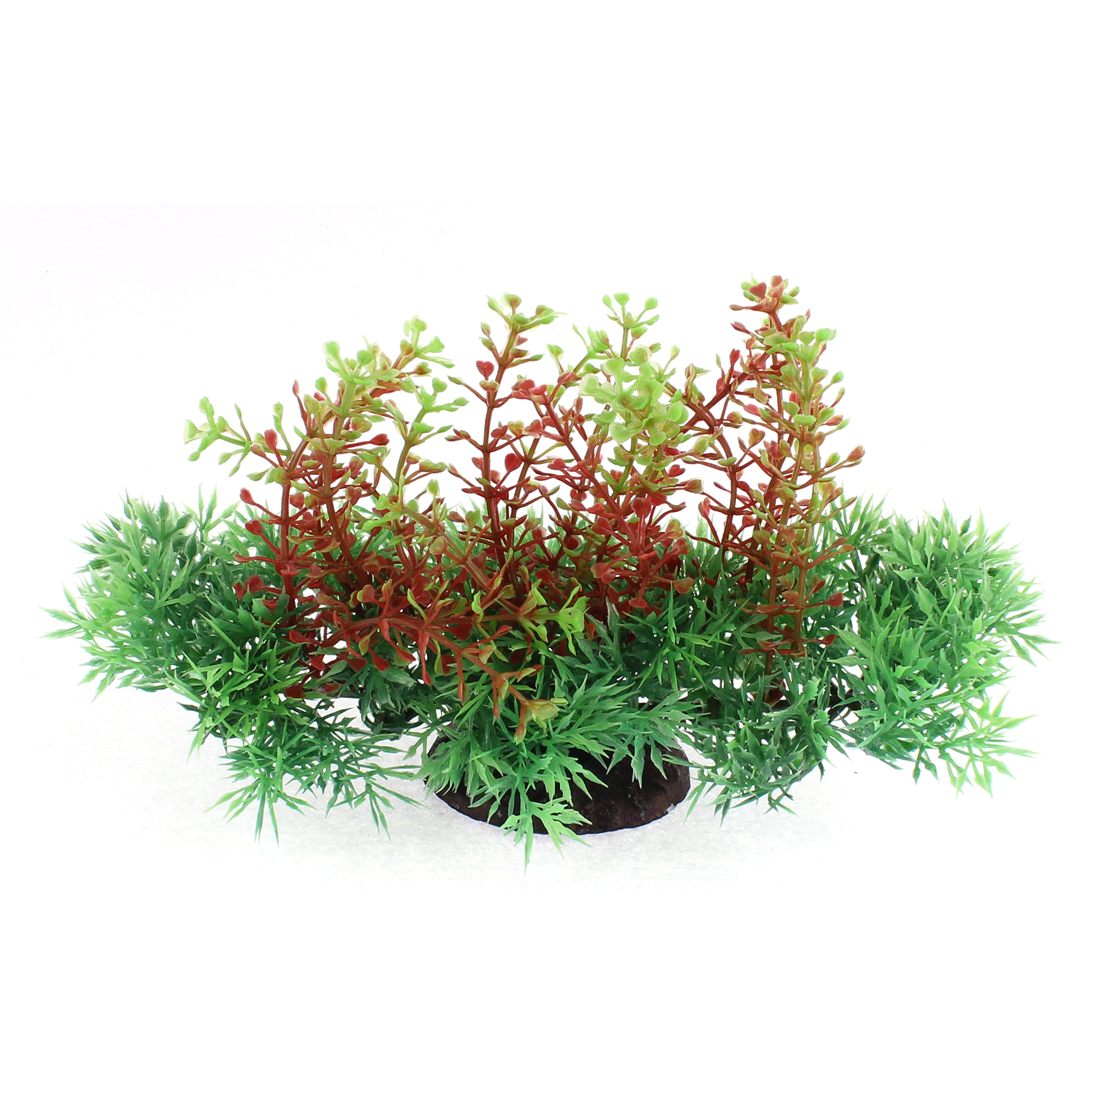 Aquarium Fishbowl Plastic Simulation Water Plant Grass Decoration 11.5x20cm